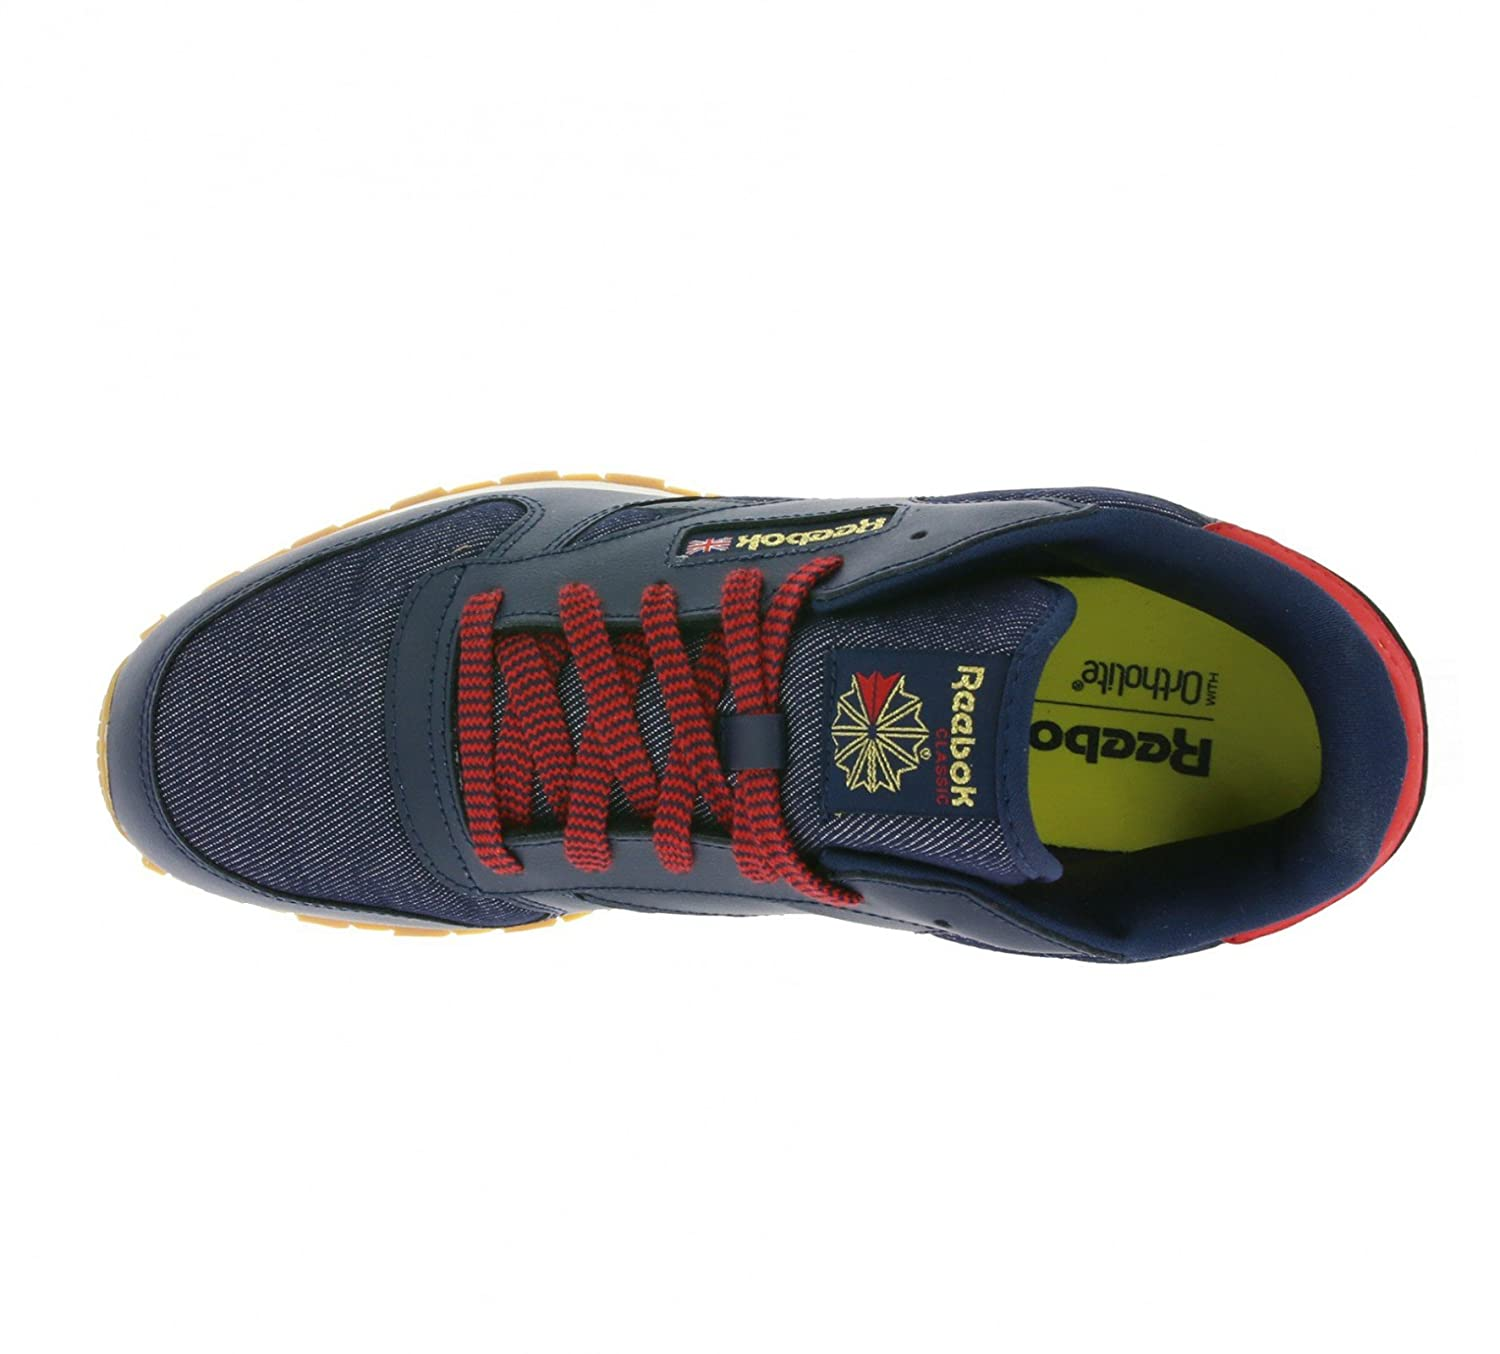 fca1487078b Reebok Unisex Kids Classic Leather Dg Ar2042 Trainers  Amazon.co.uk  Shoes    Bags